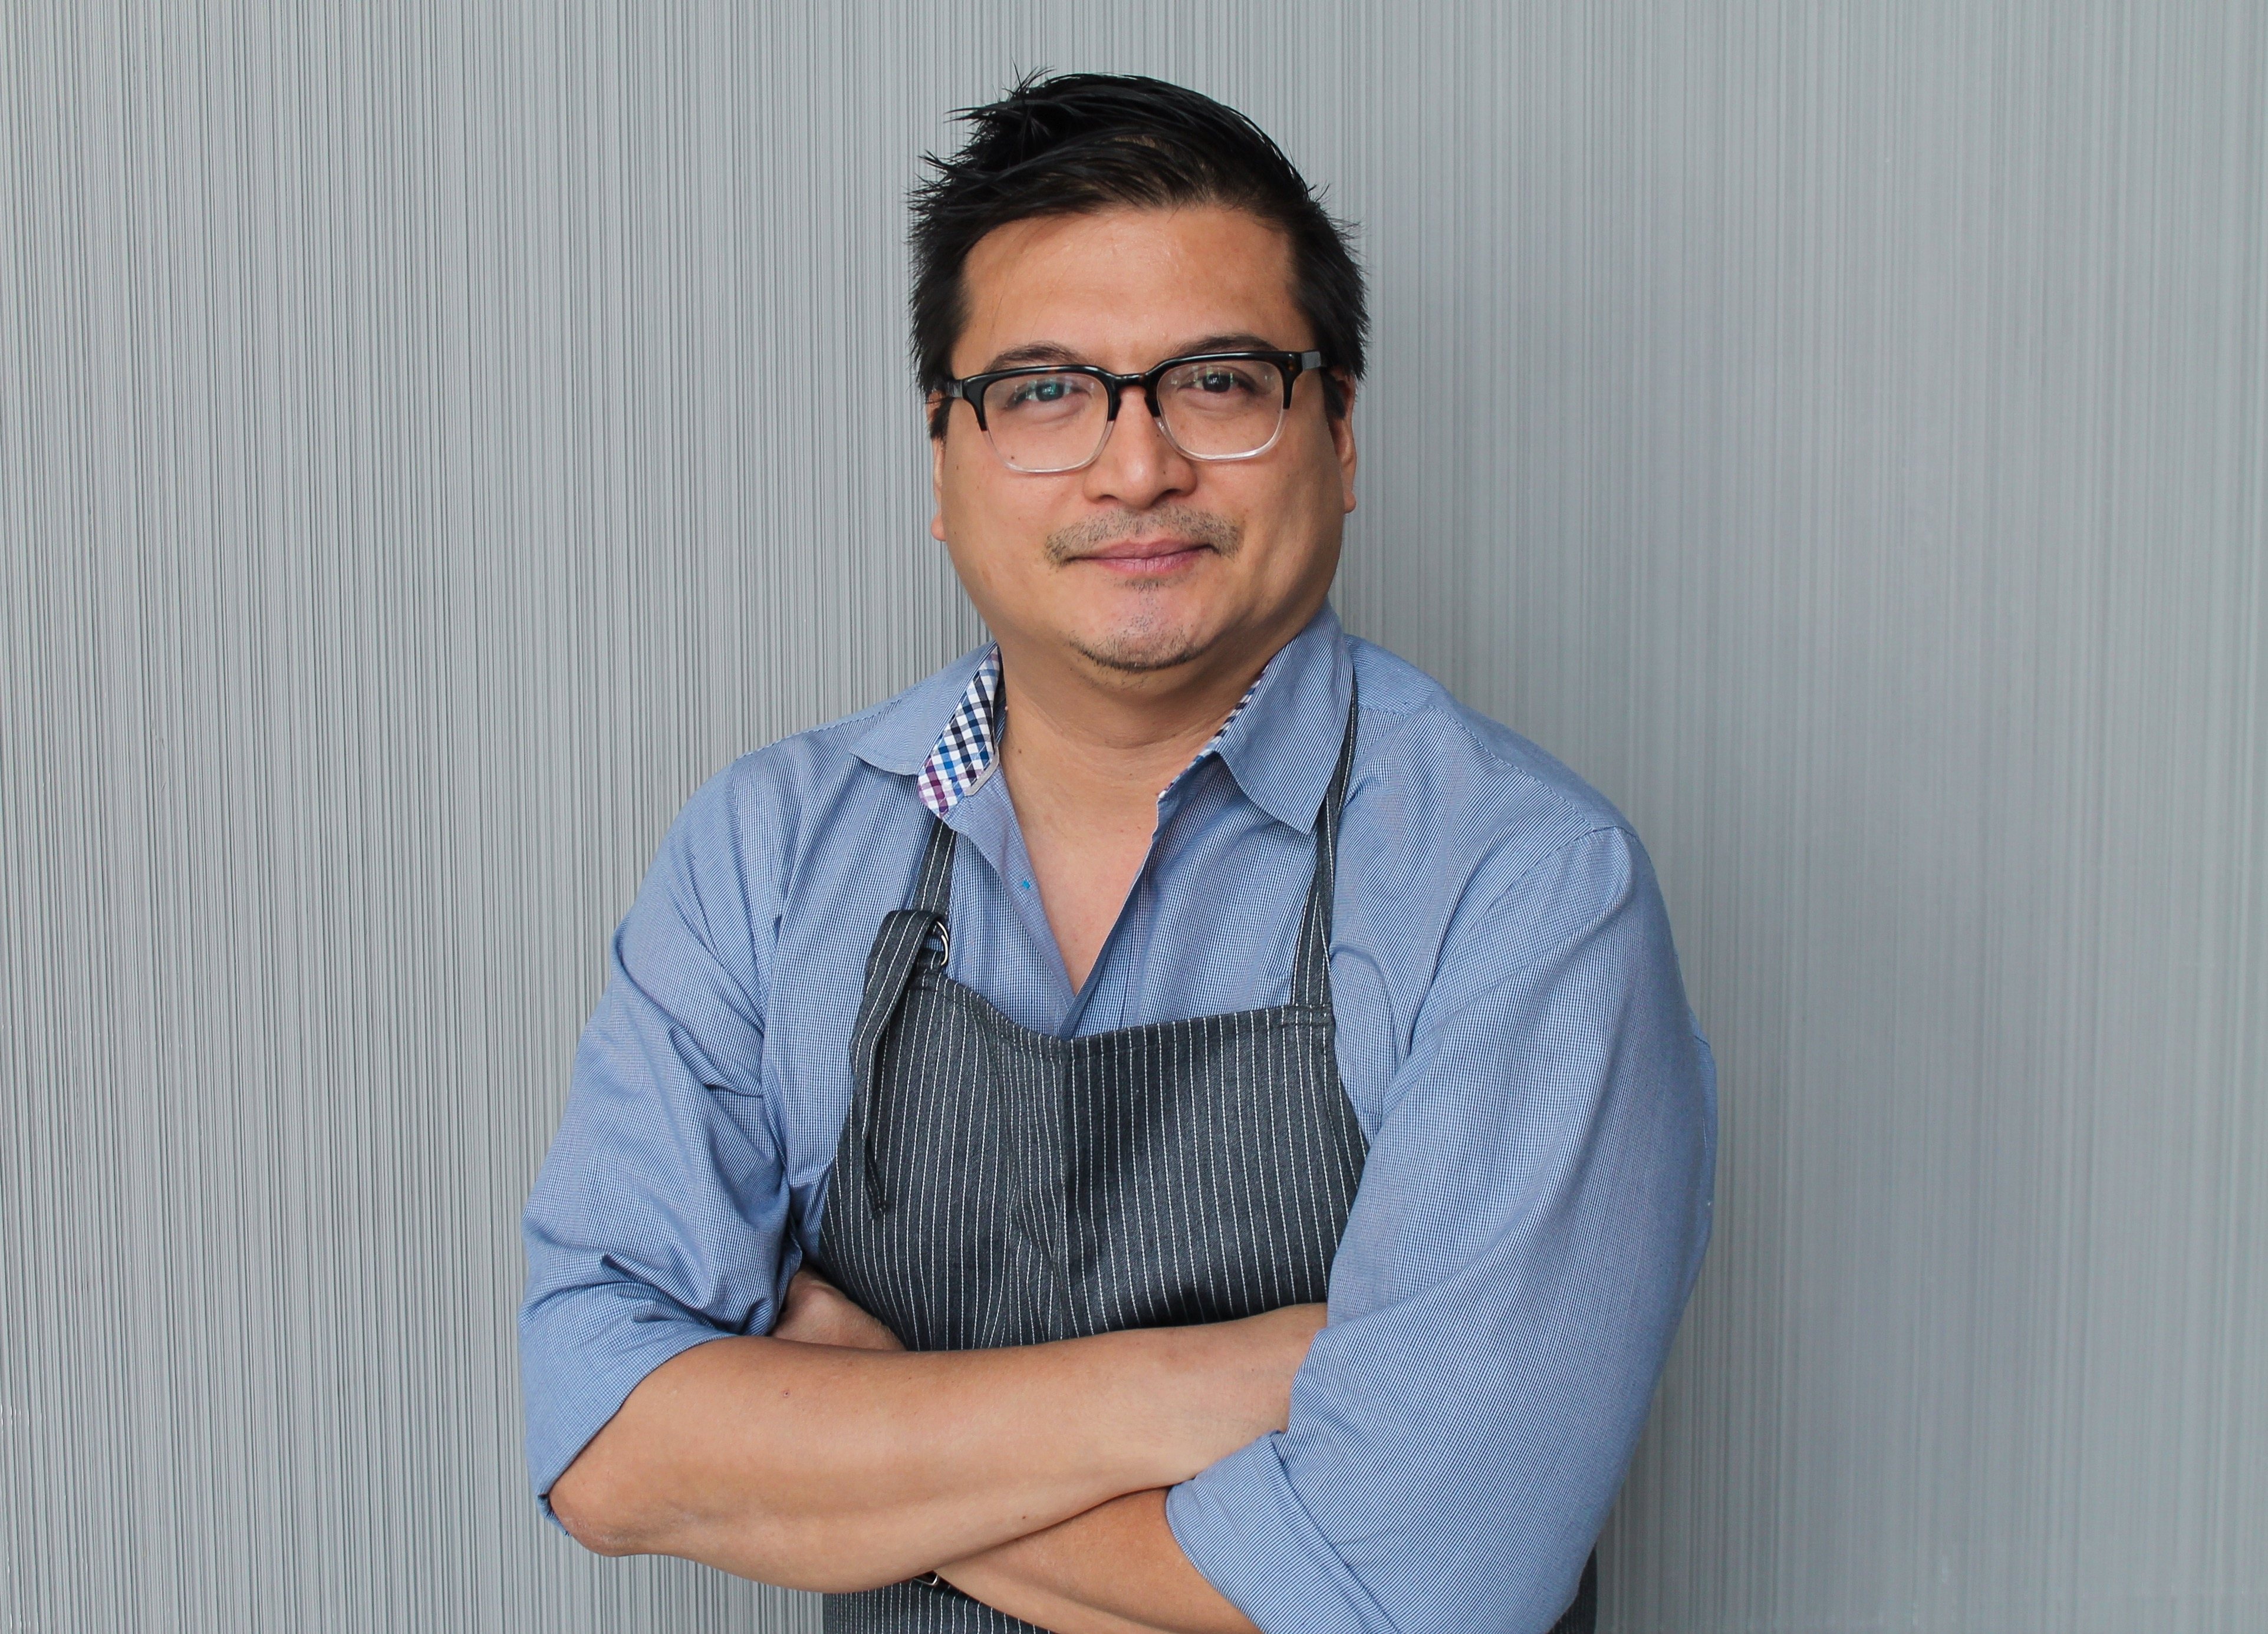 Whole Foods has hired Tien Ho as global vice president of culinary and hospitality.